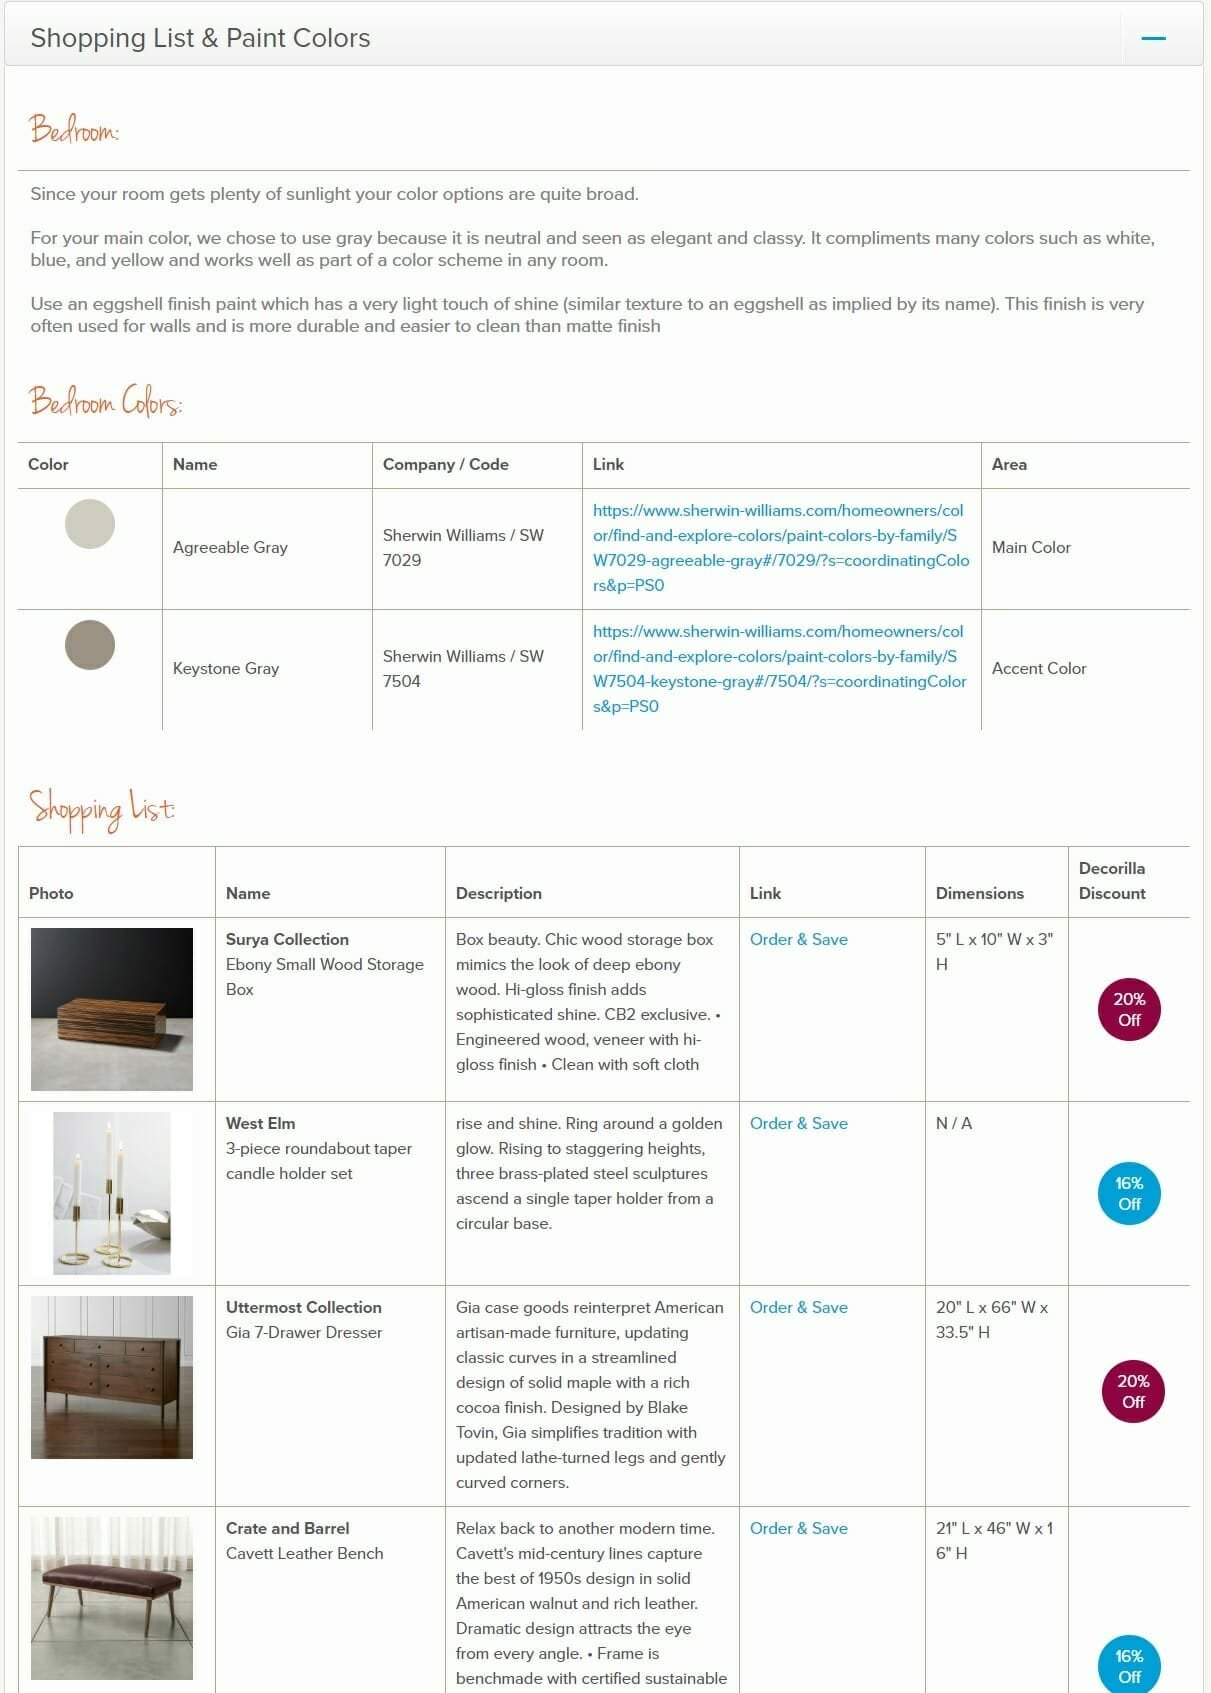 Online interior design service - Decorilla shopping list